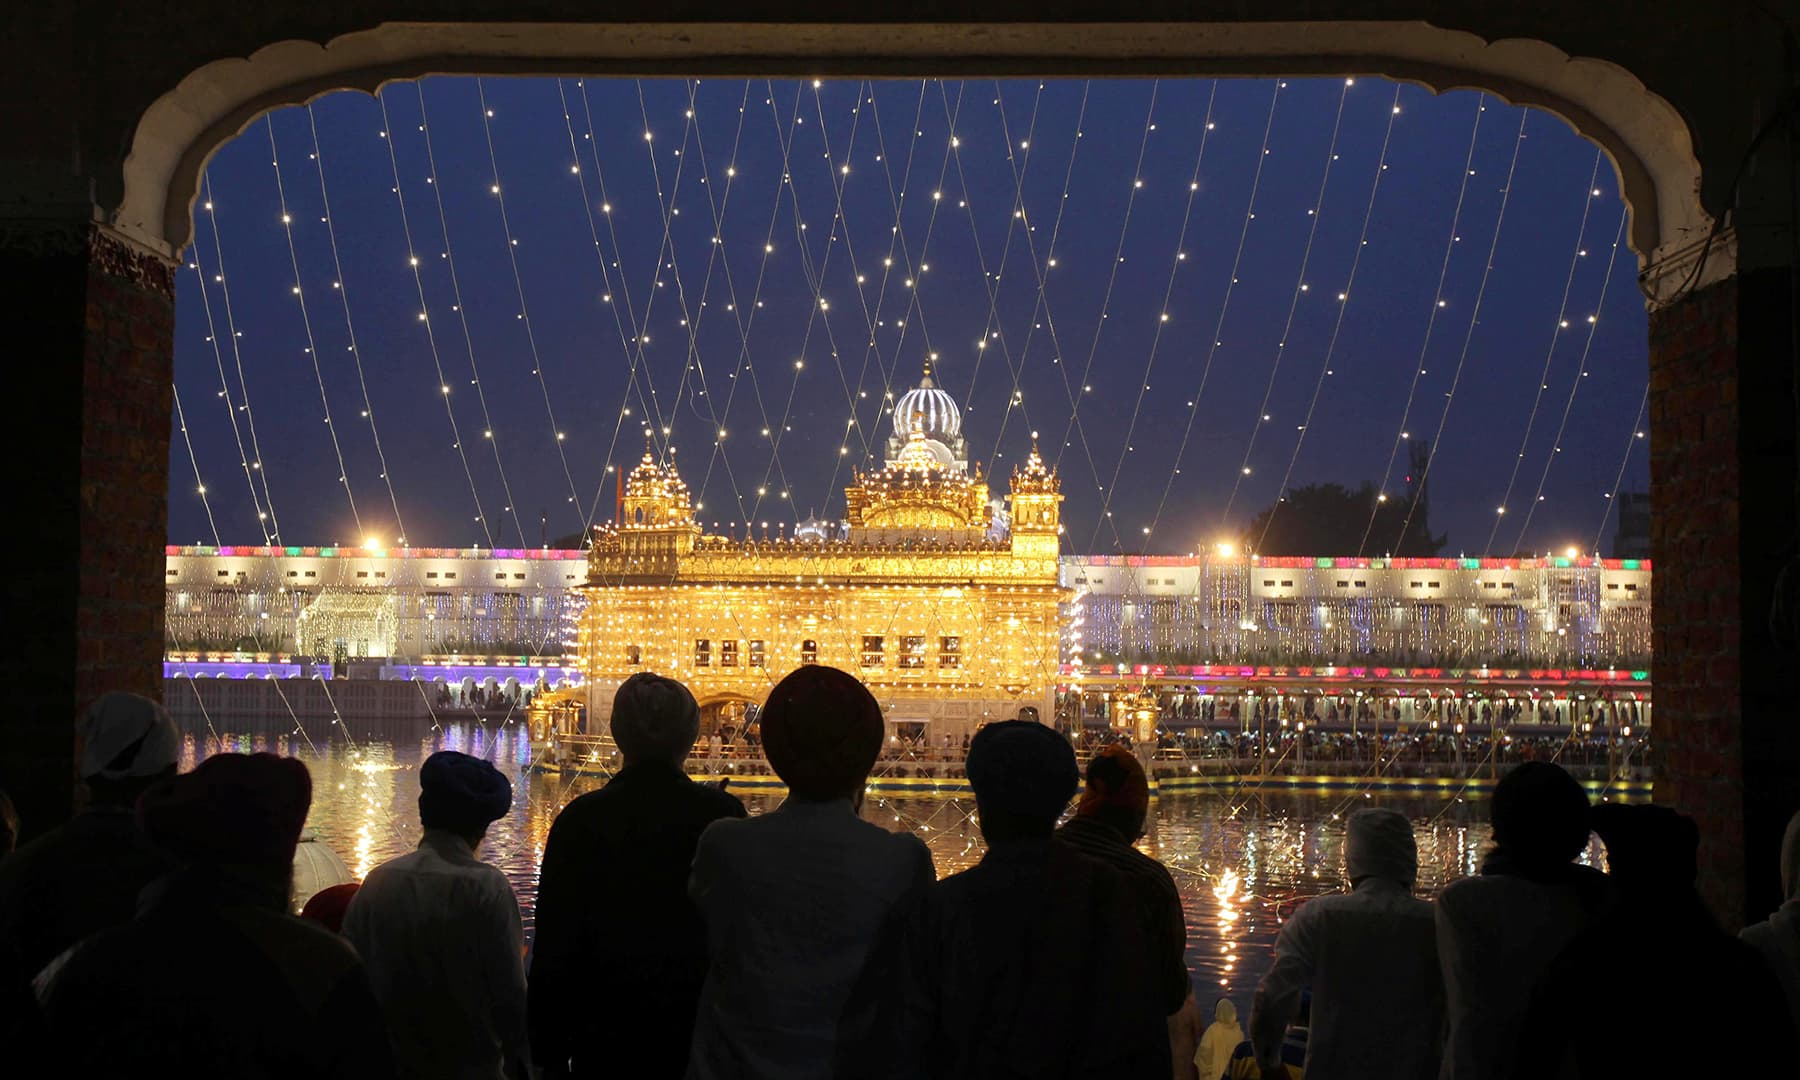 The Golden Temple is seen illuminated as Sikh devotees arrive on the eve of the 550th birth anniversary of Guru Nanak Dev, the first Sikh Guru and founder of Sikh faith, in Amritsar, India on November 11. — Reuters